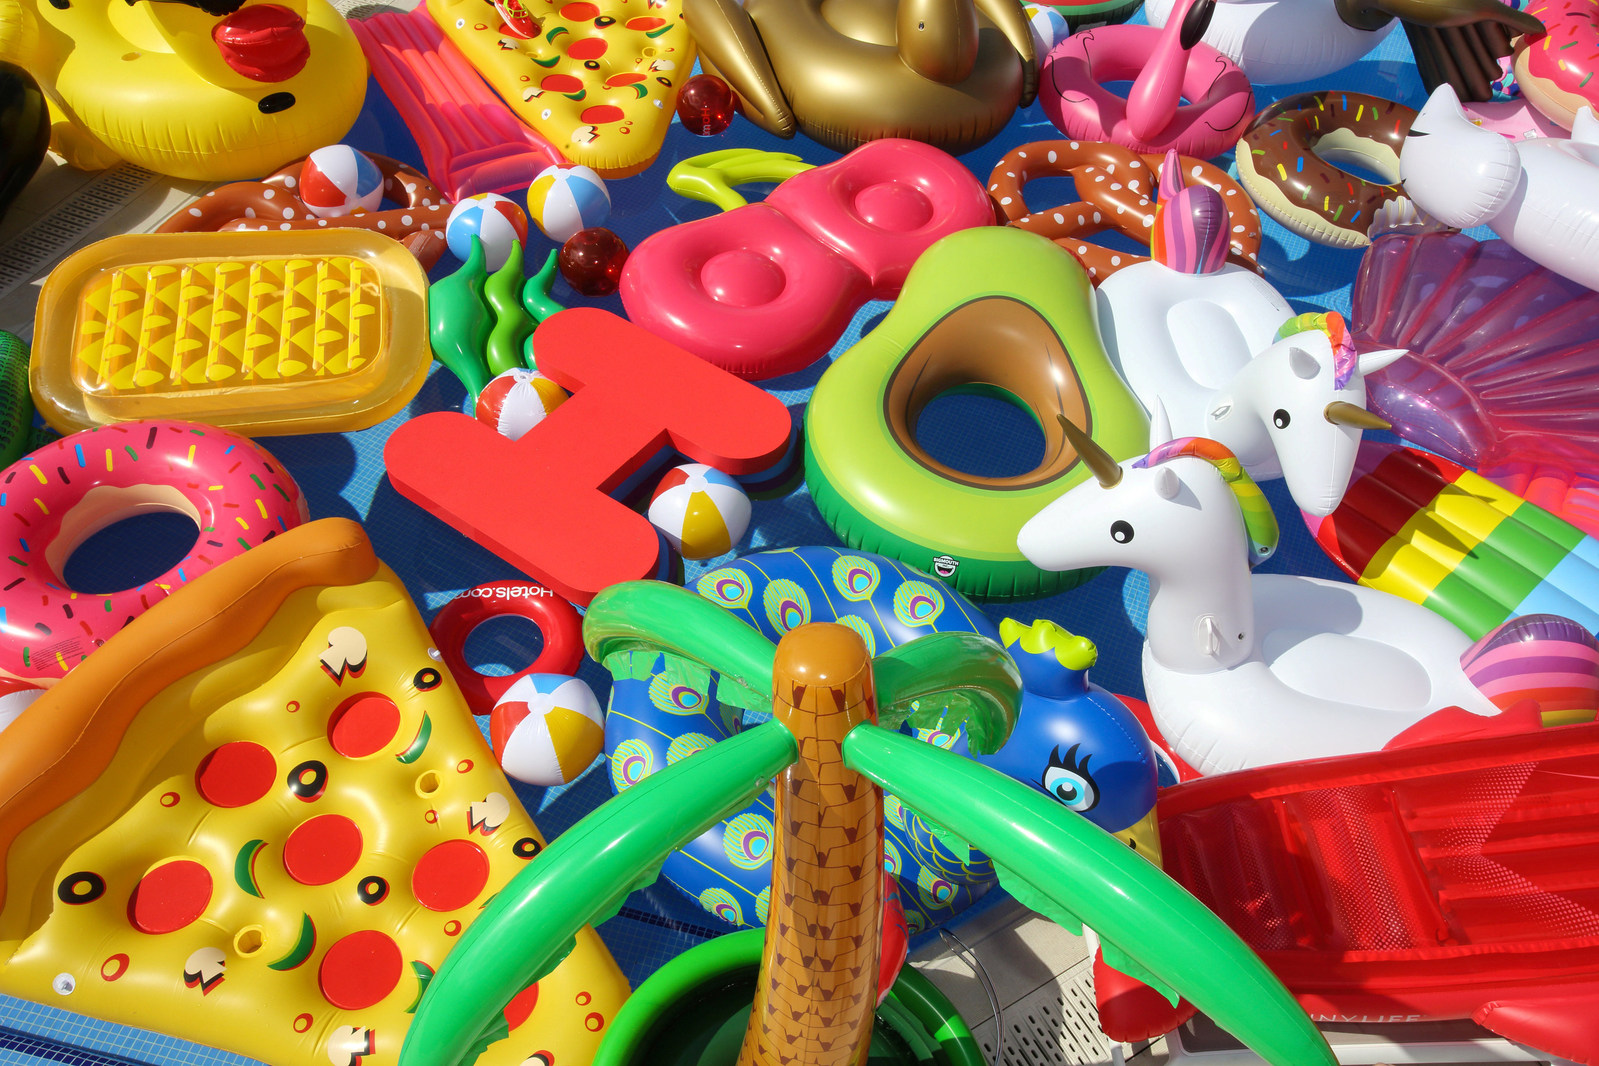 Inflatable Sanctuary Launches in Response to Abandoned Pool ...